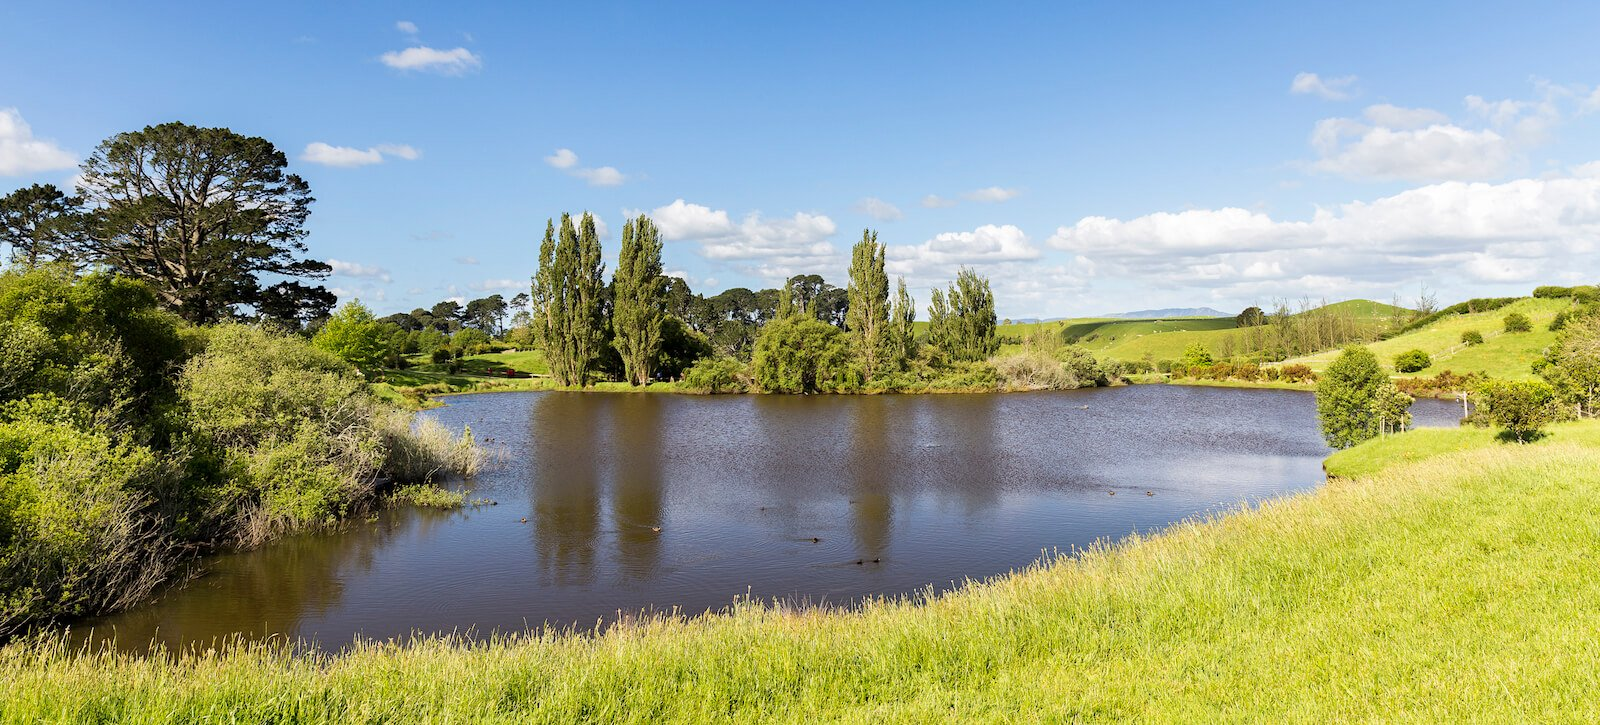 visit hobbiton during your trip on new zealand